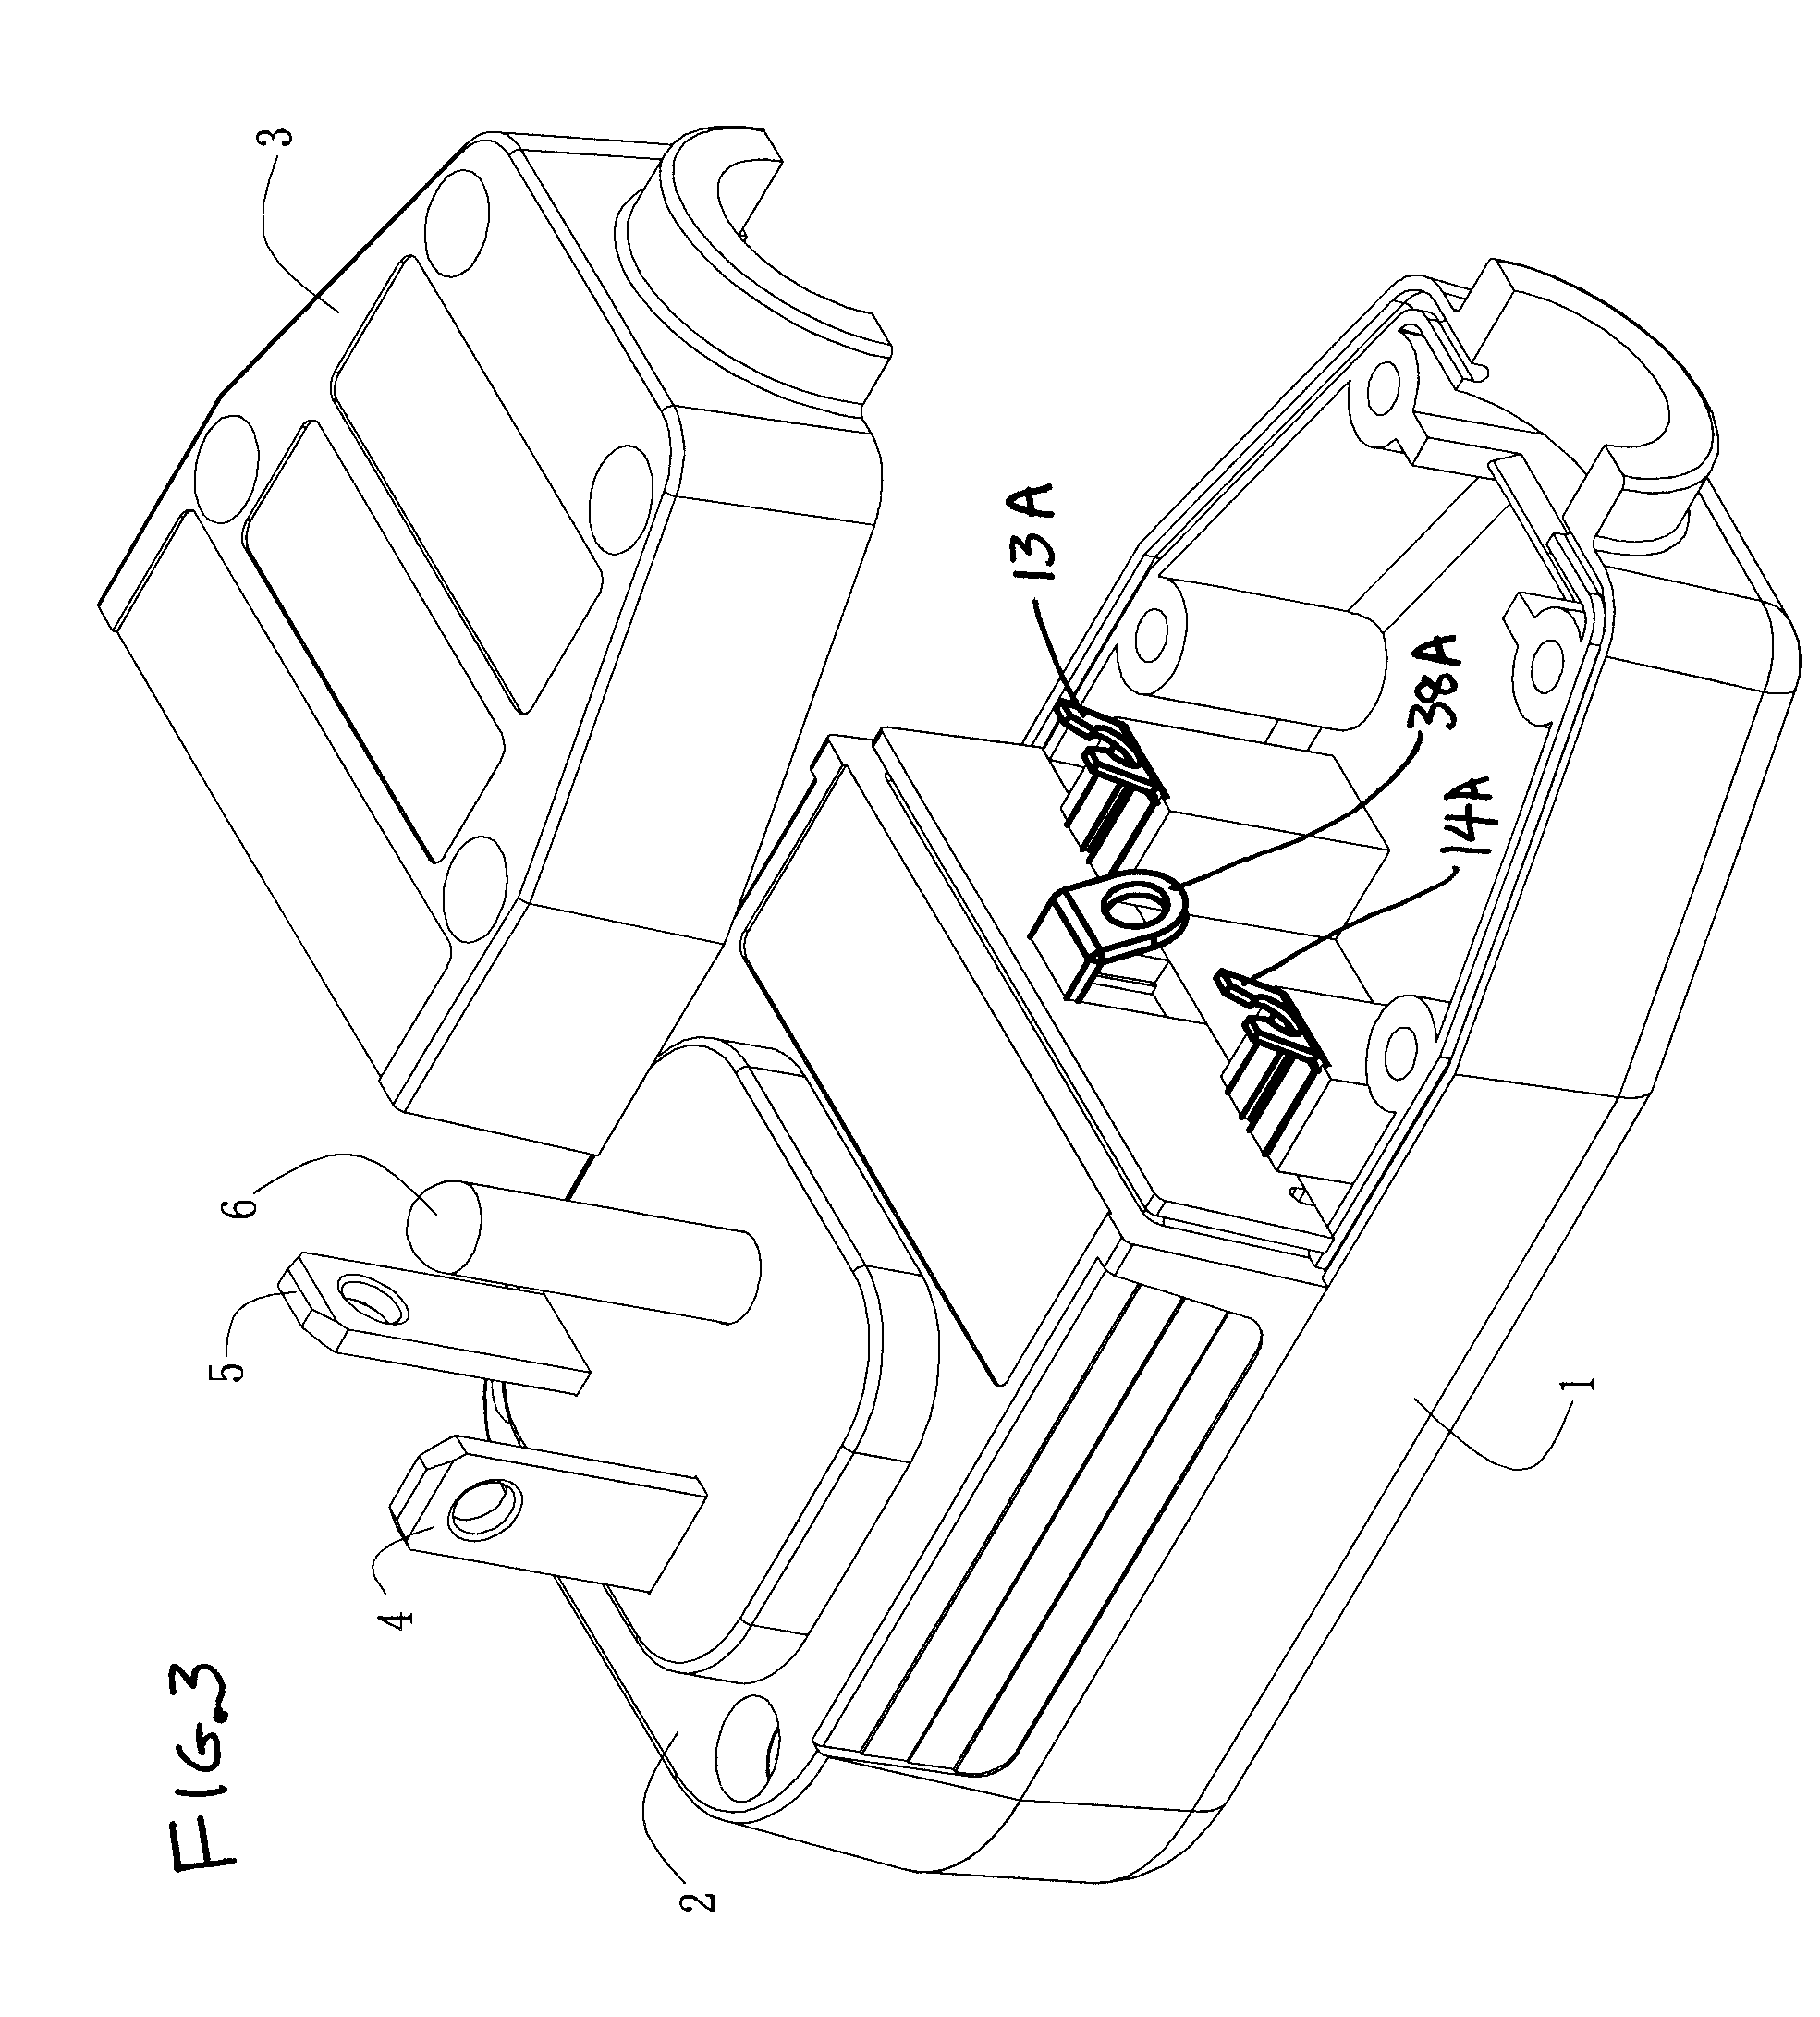 patent us7672098 - power plug with leakage current detection and protection circuit